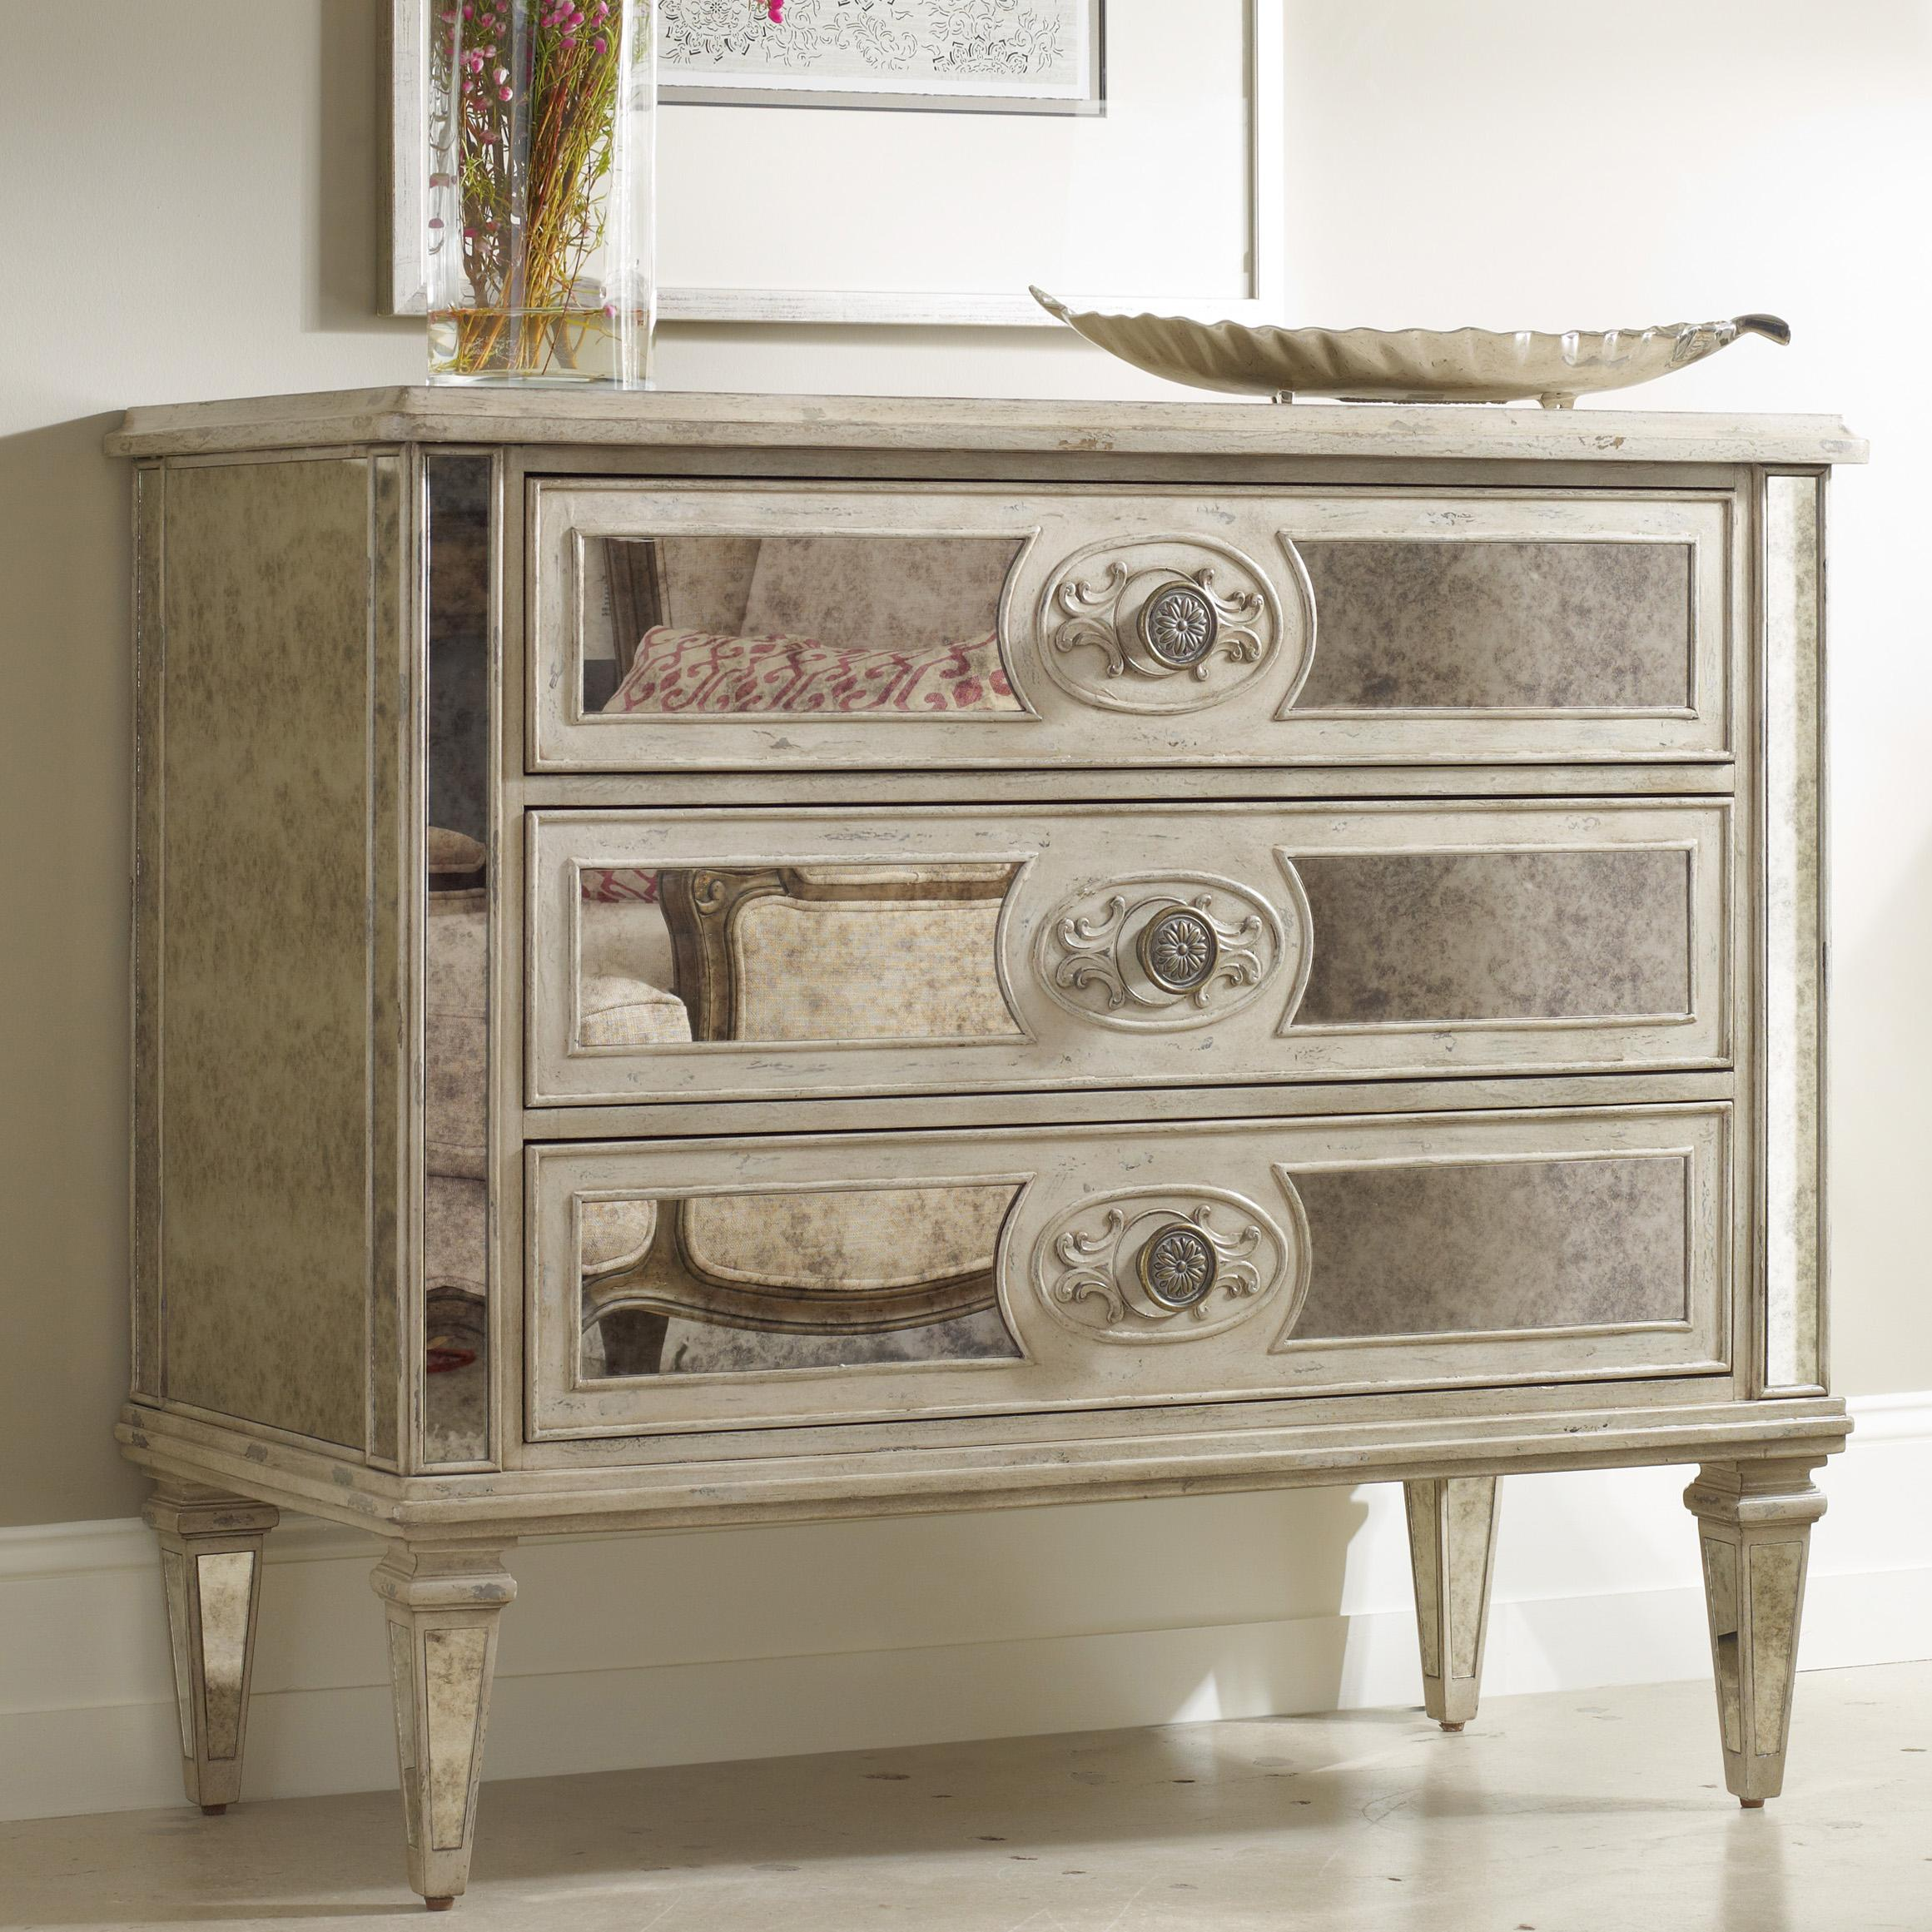 Hooker Furniture Living Room Accents 3-Drawer Antique Mirrored Chest - Item Number: 5125-85001